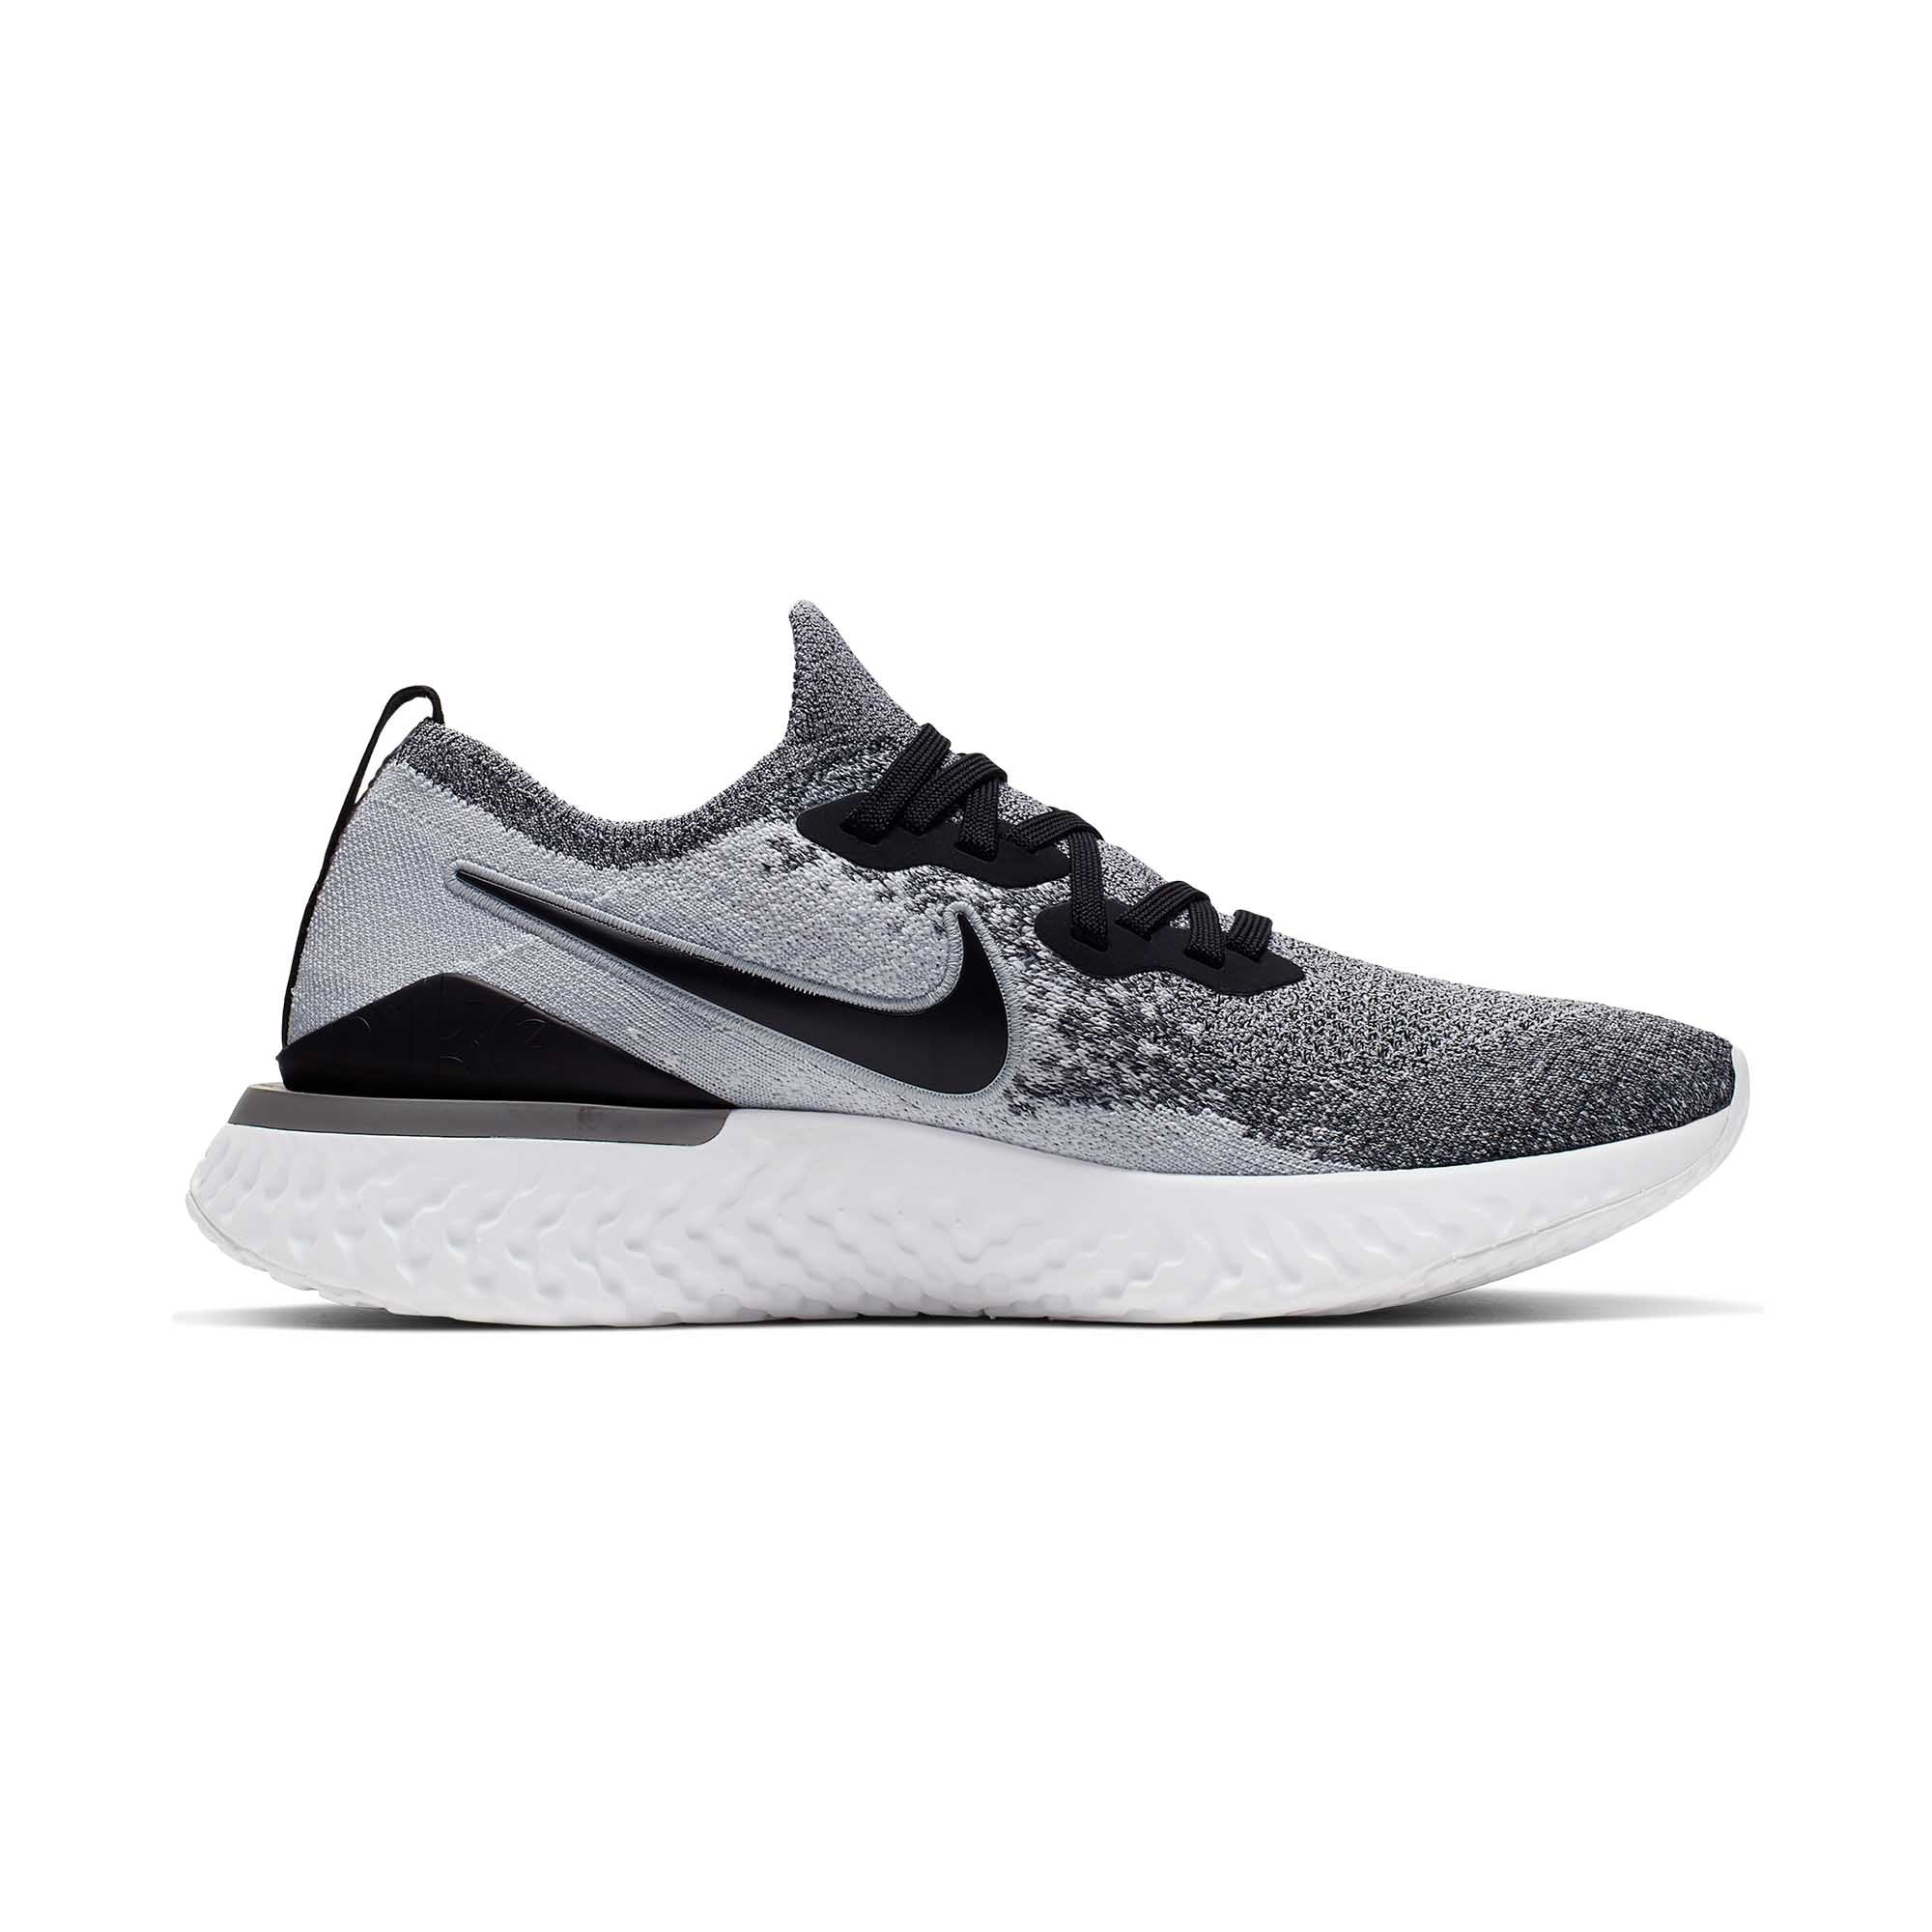 7caca408d62a Running Nike Shoes   Sportswear Online in Singapore